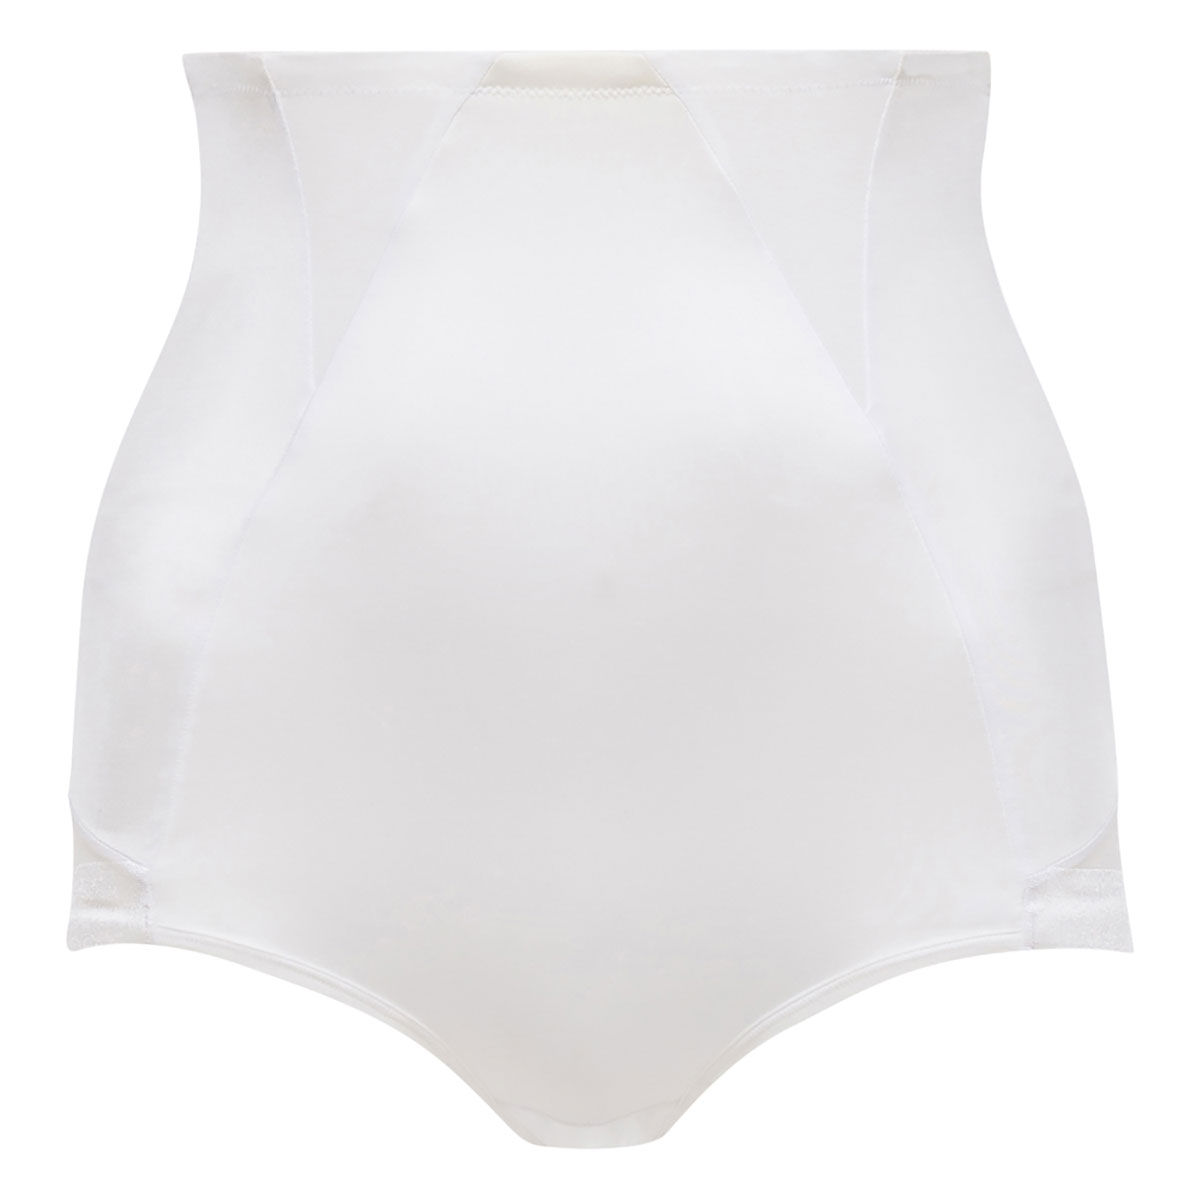 High-Waisted Girdle in White– Perfect Silhouette, , PLAYTEX